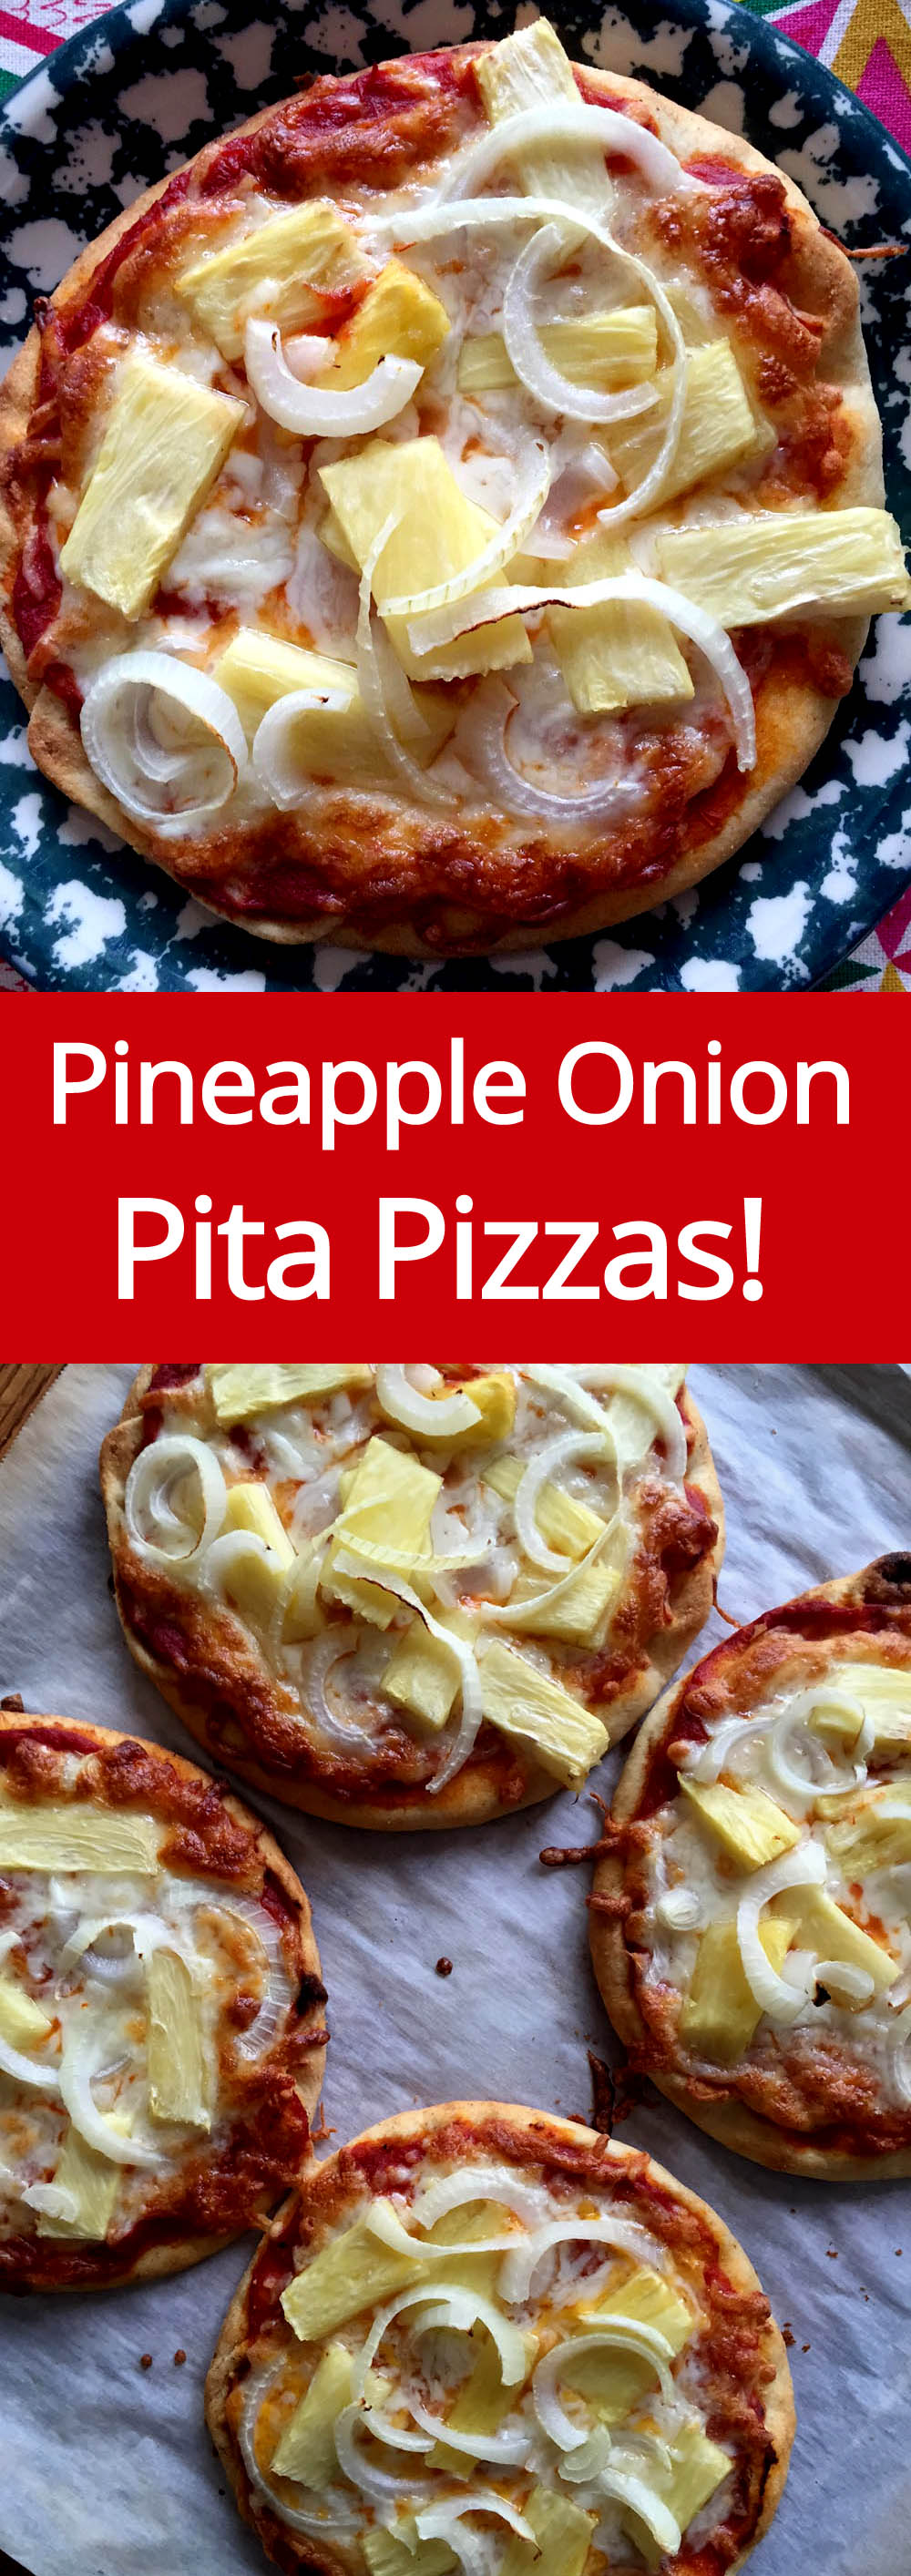 Pineapple Onion Pita Pizza Recipe - super easy way to make individual pizzas!